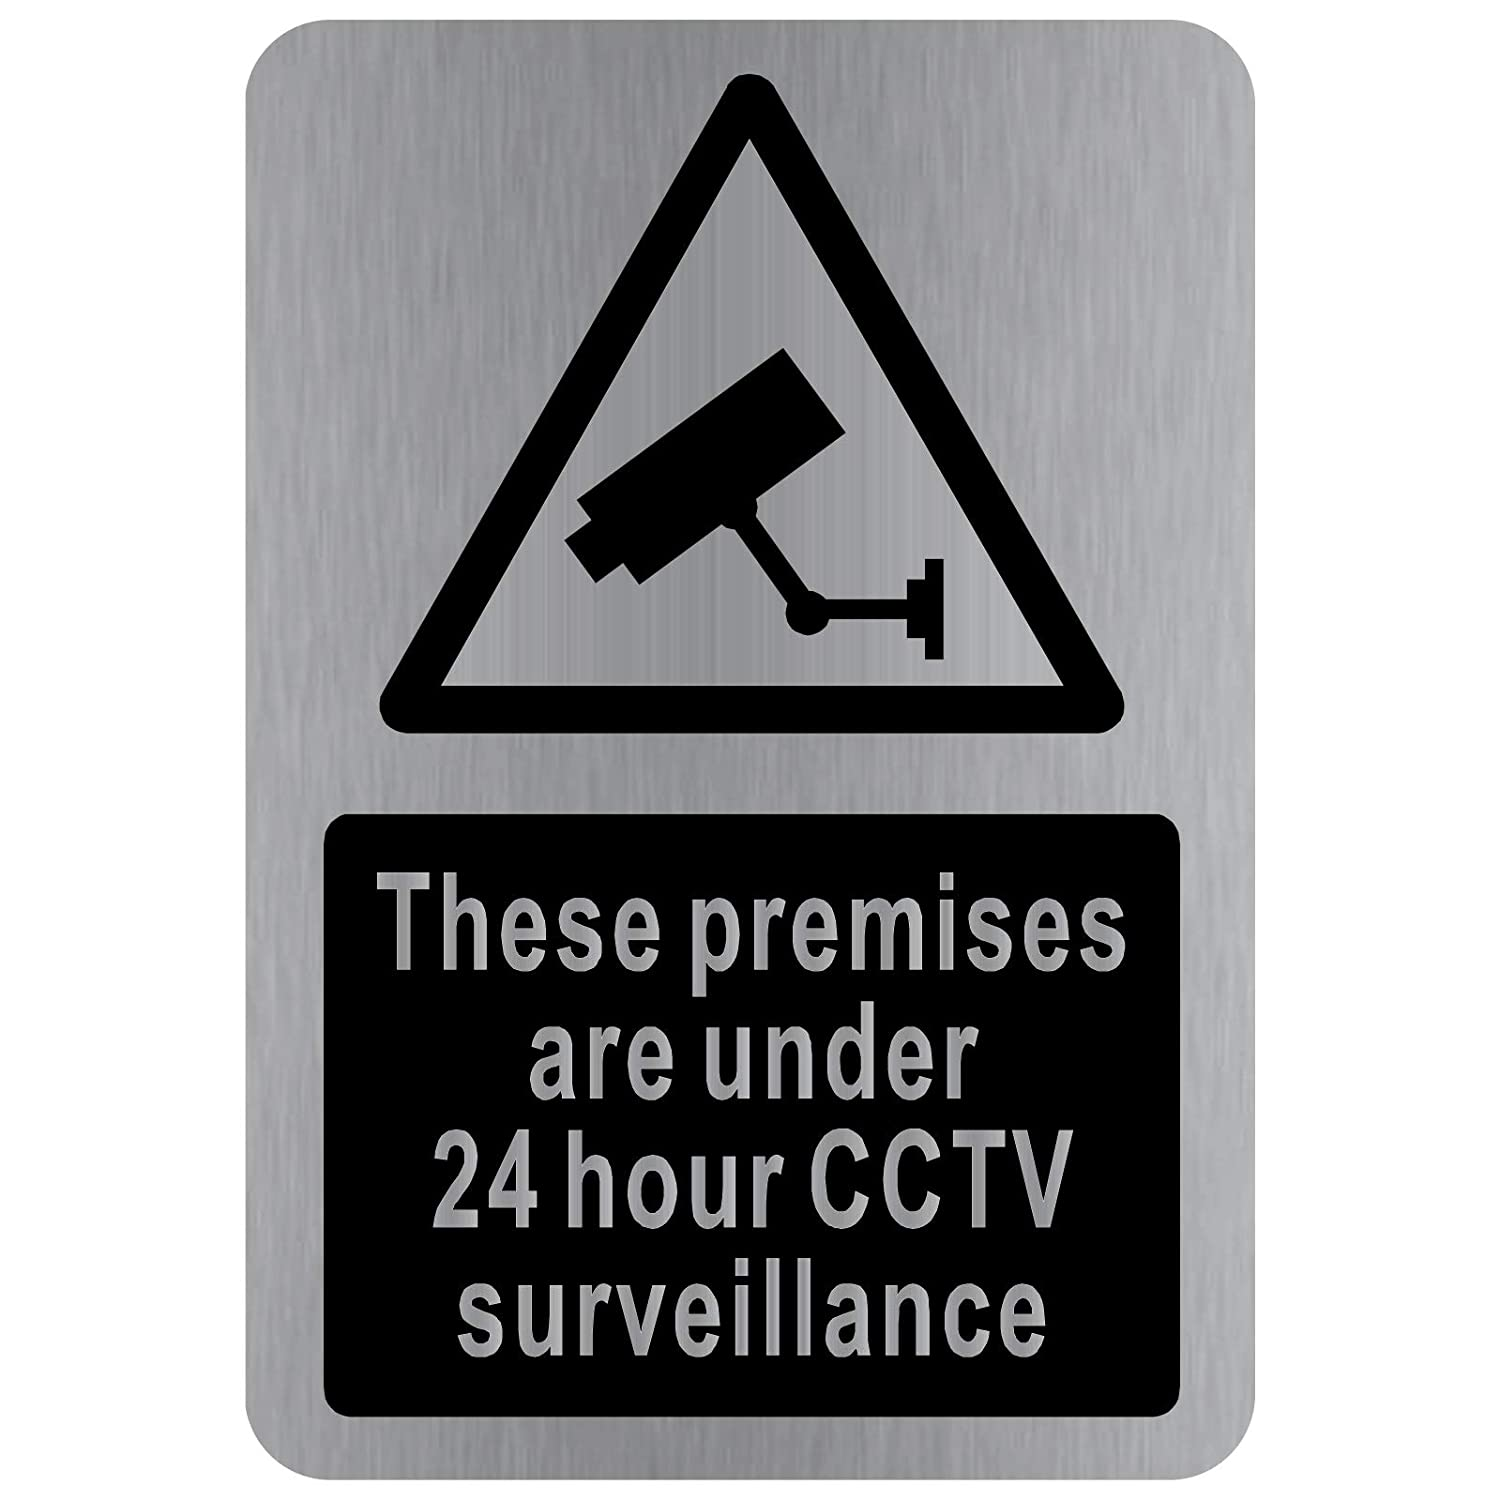 CCTV In Operation Sign-DESIGN 2-WITH IMAGE-Brushed Silver Aluminium Metal-Warning Door Notice Office Shop Warehouse School Cafe Restaurant Pub Business Hotel Premises Camera Recording